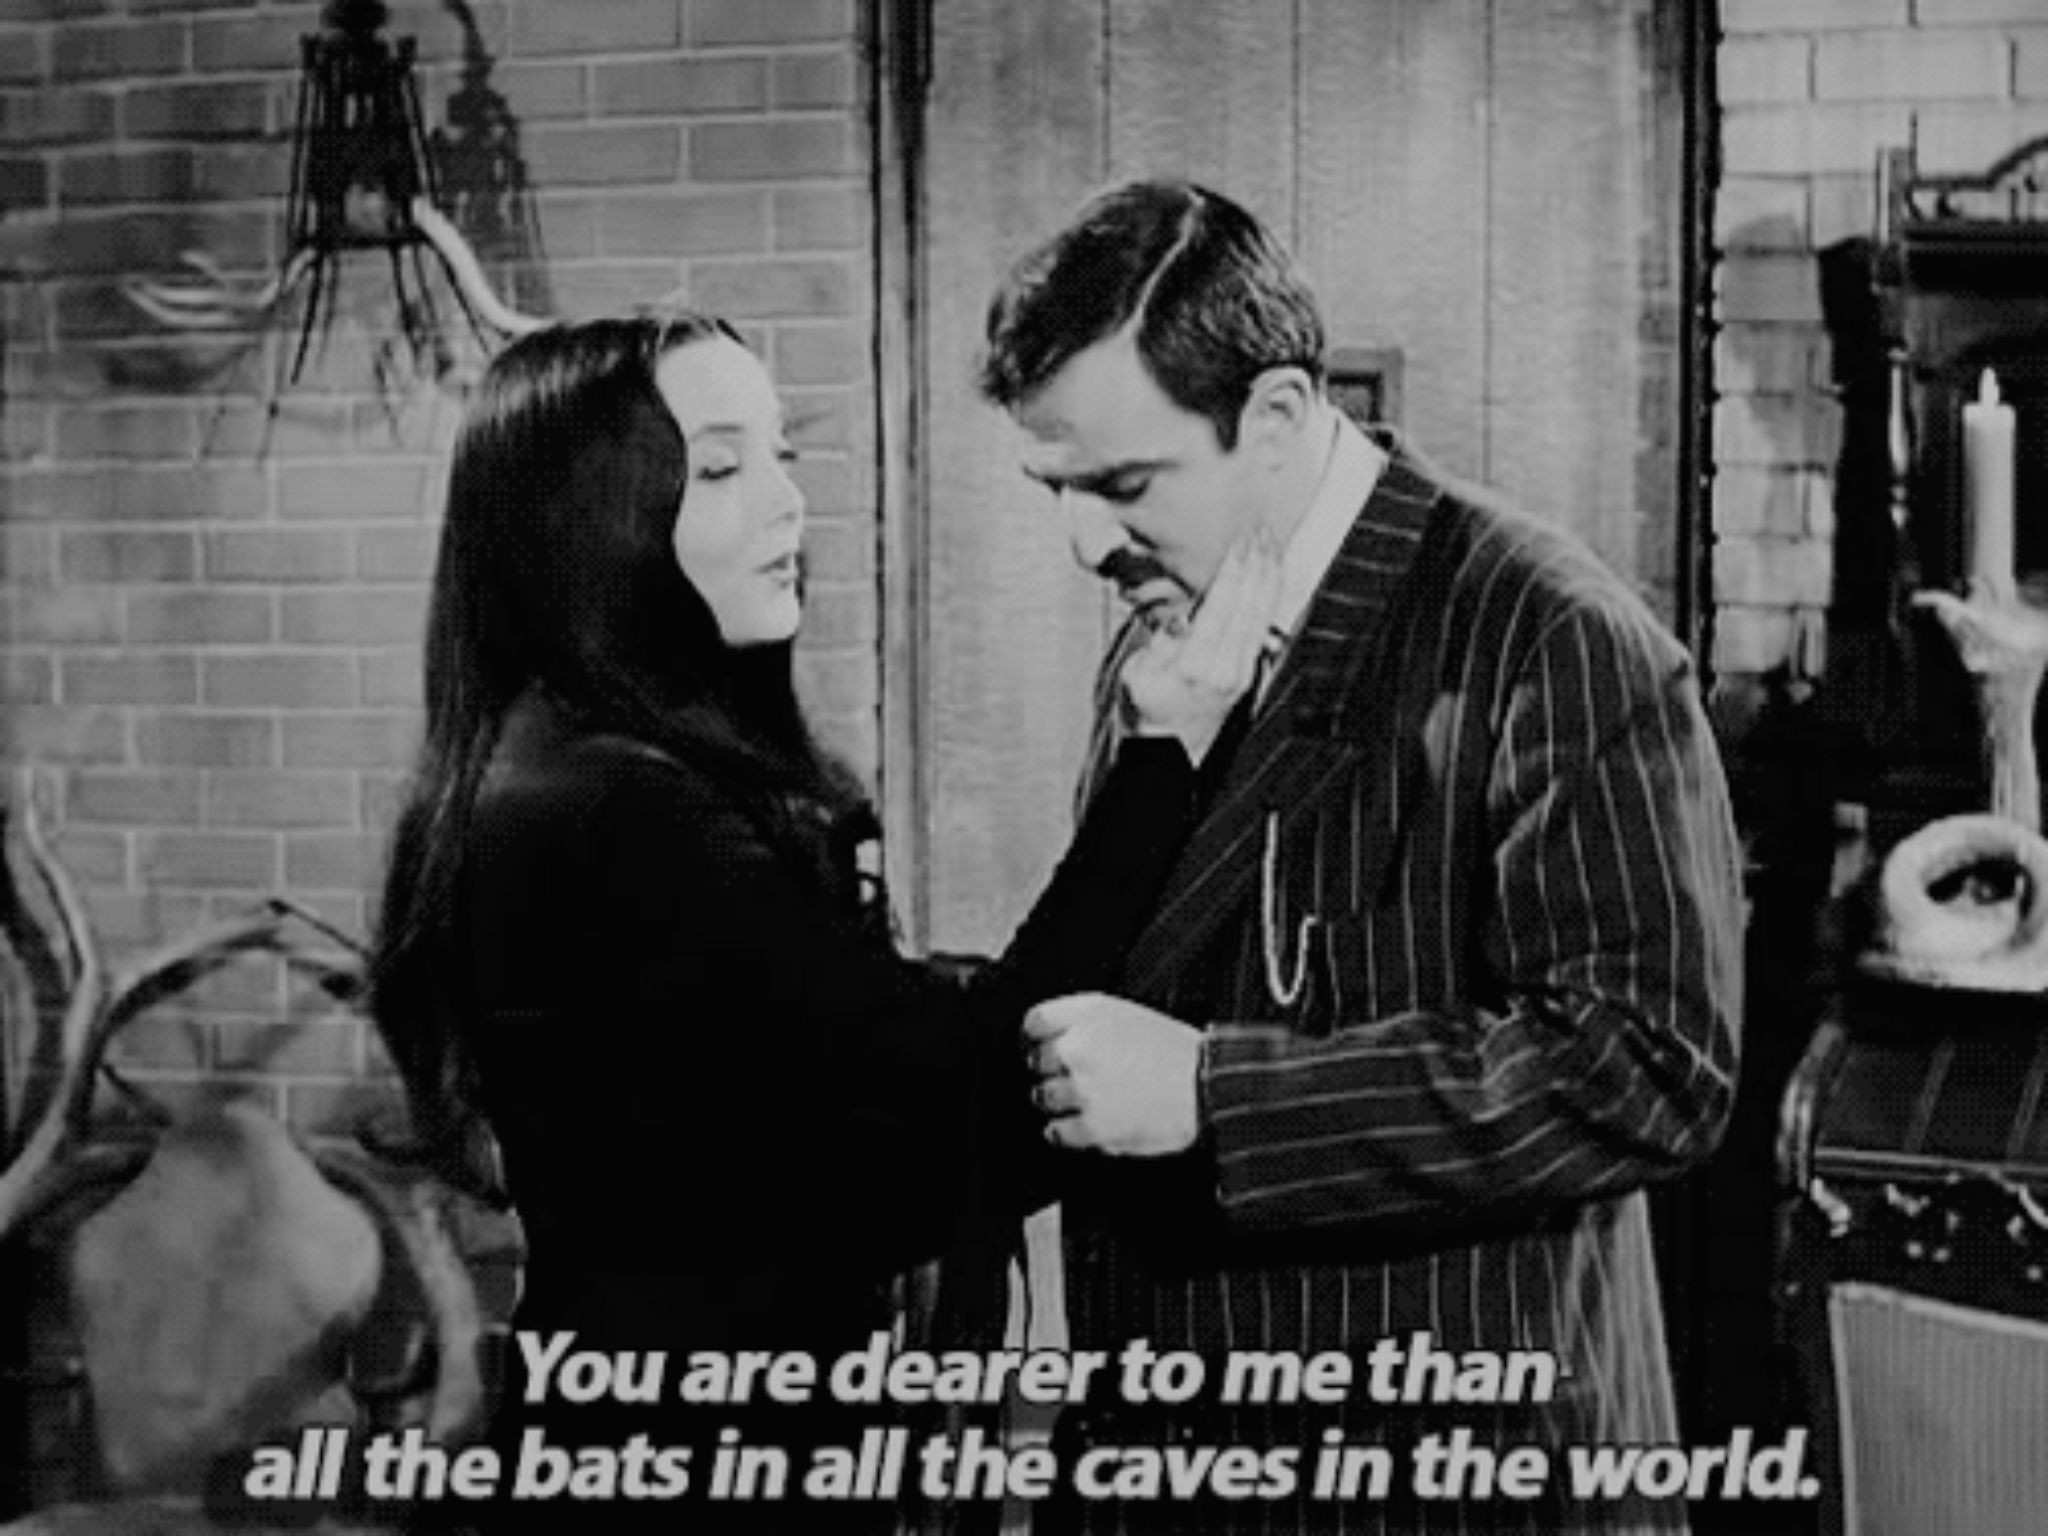 love cute couple cute Bat quote Black and White movie old lovely true love the addams family oldschool black white Gomez Addams Morticia Addams movie quotes